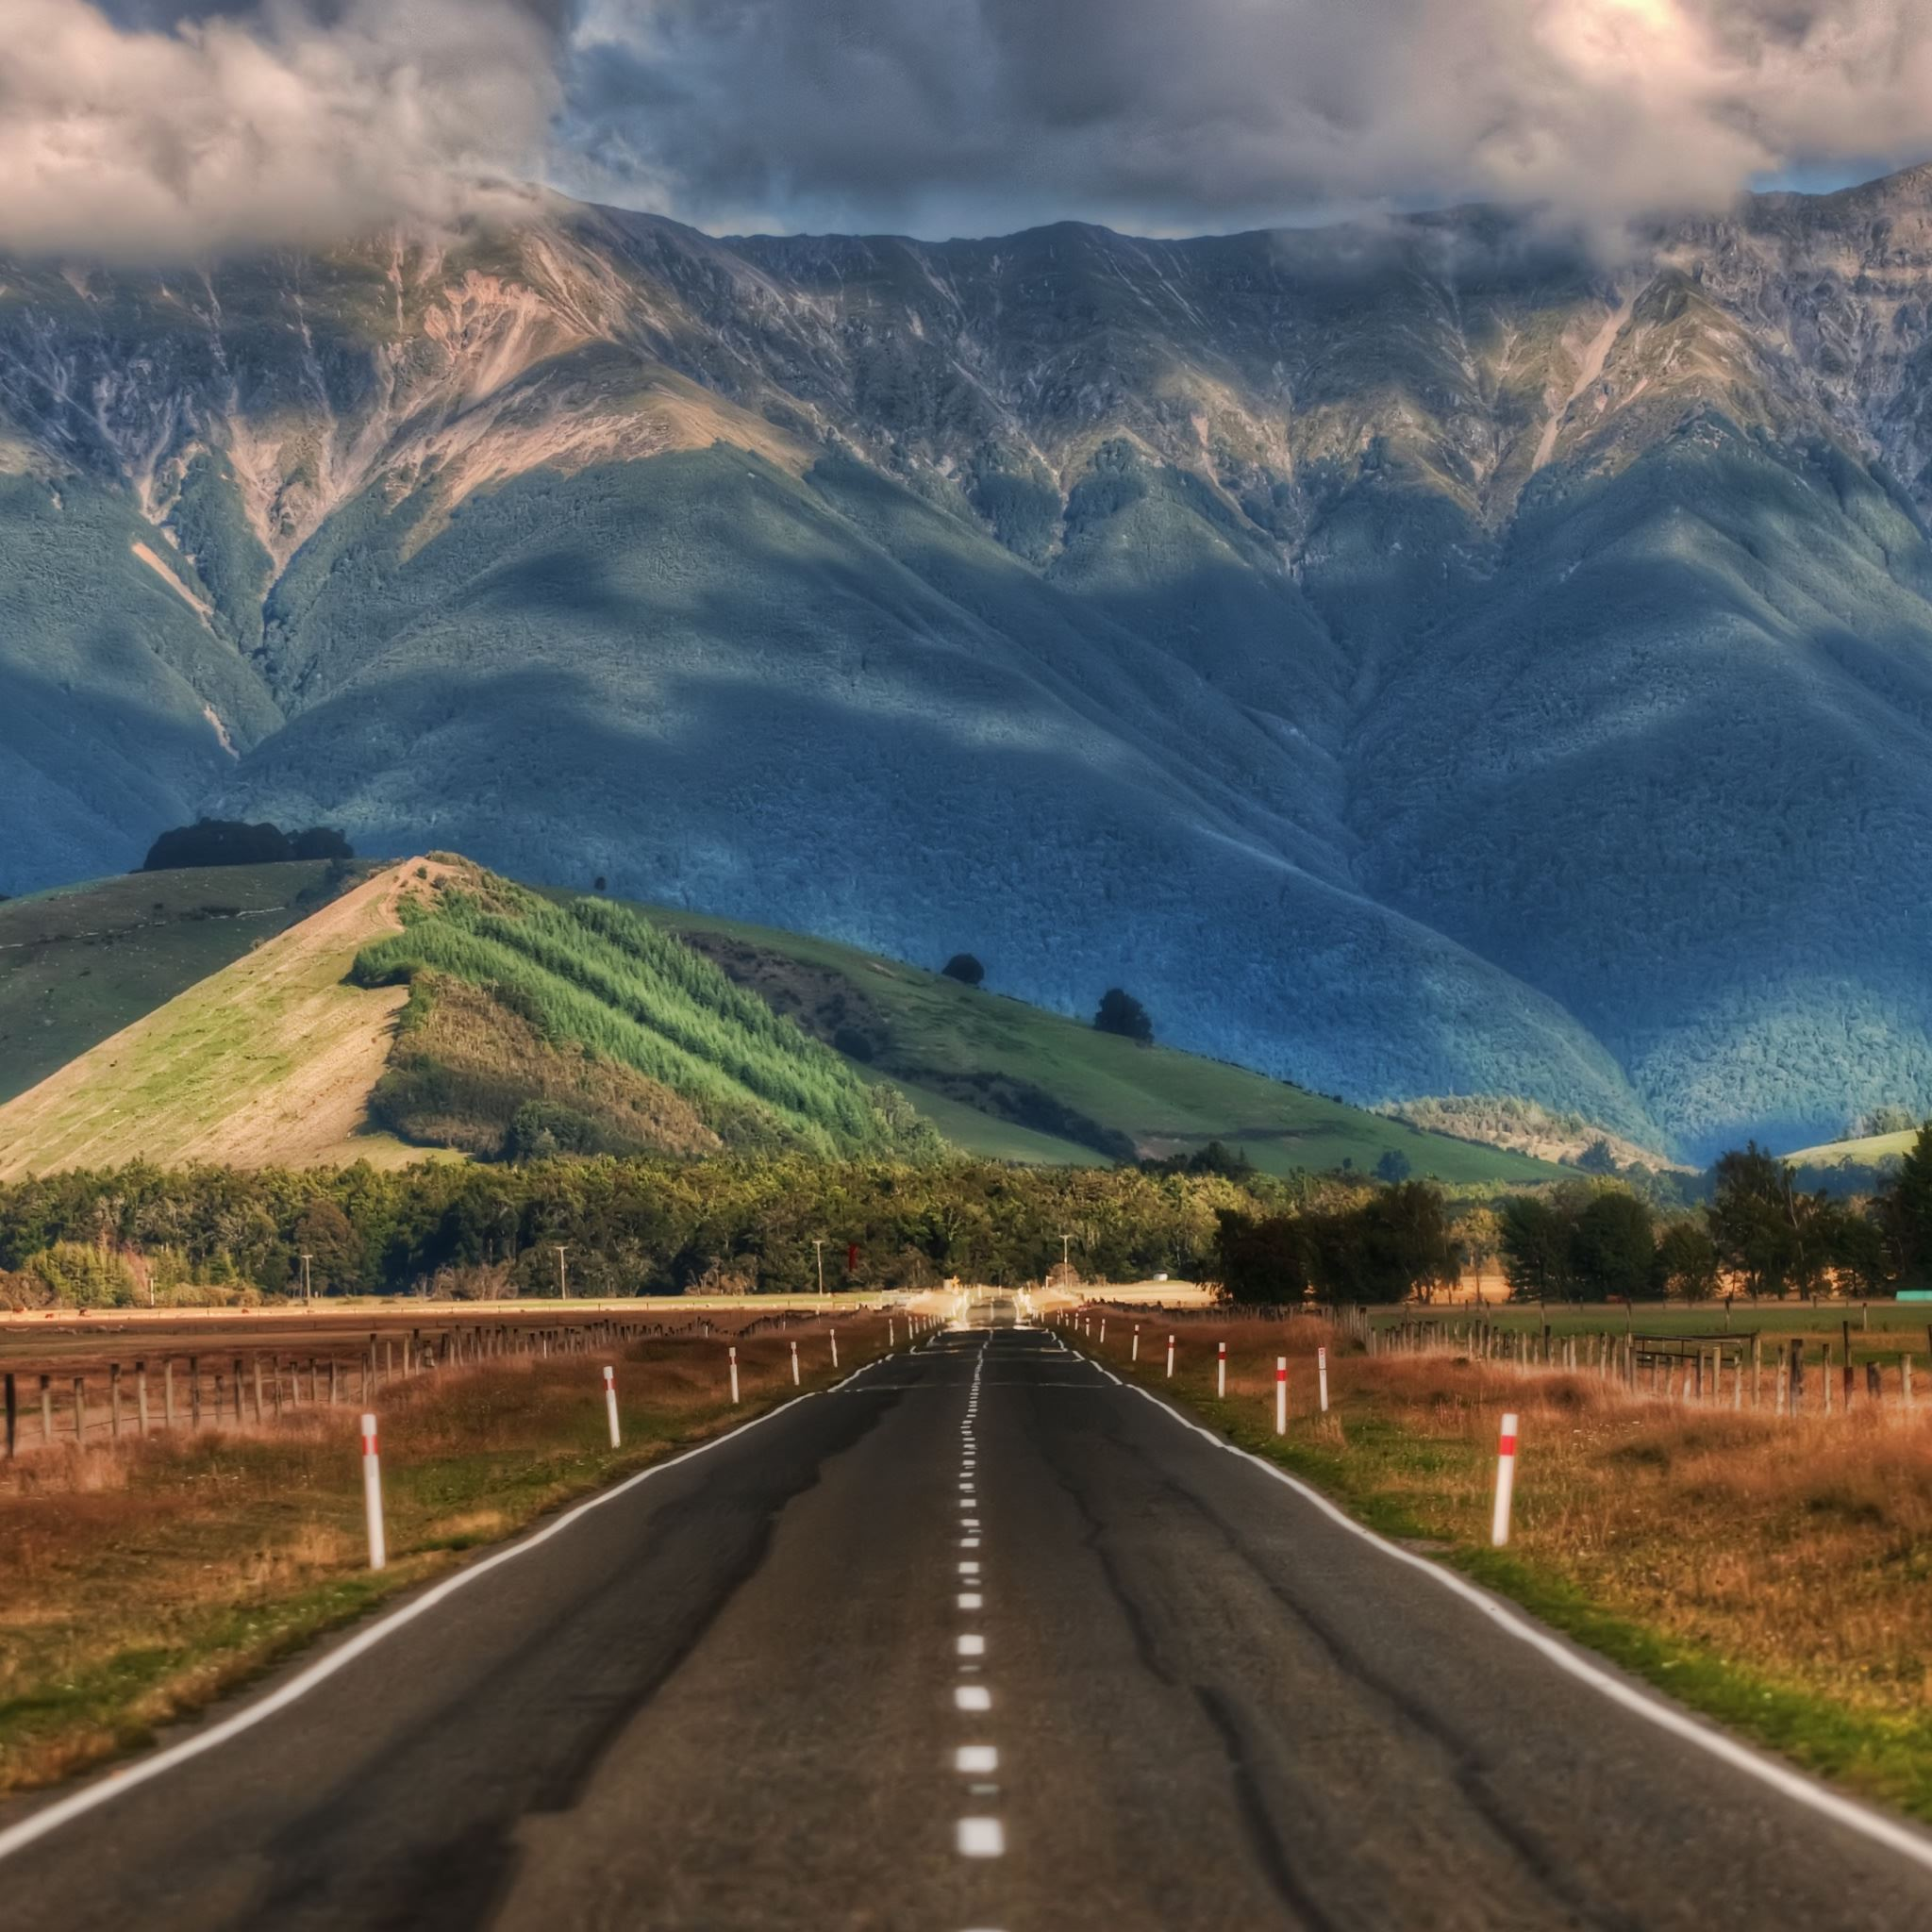 Computer Wallpaper Nz: Road In New Zealand IPad Air Wallpaper Download